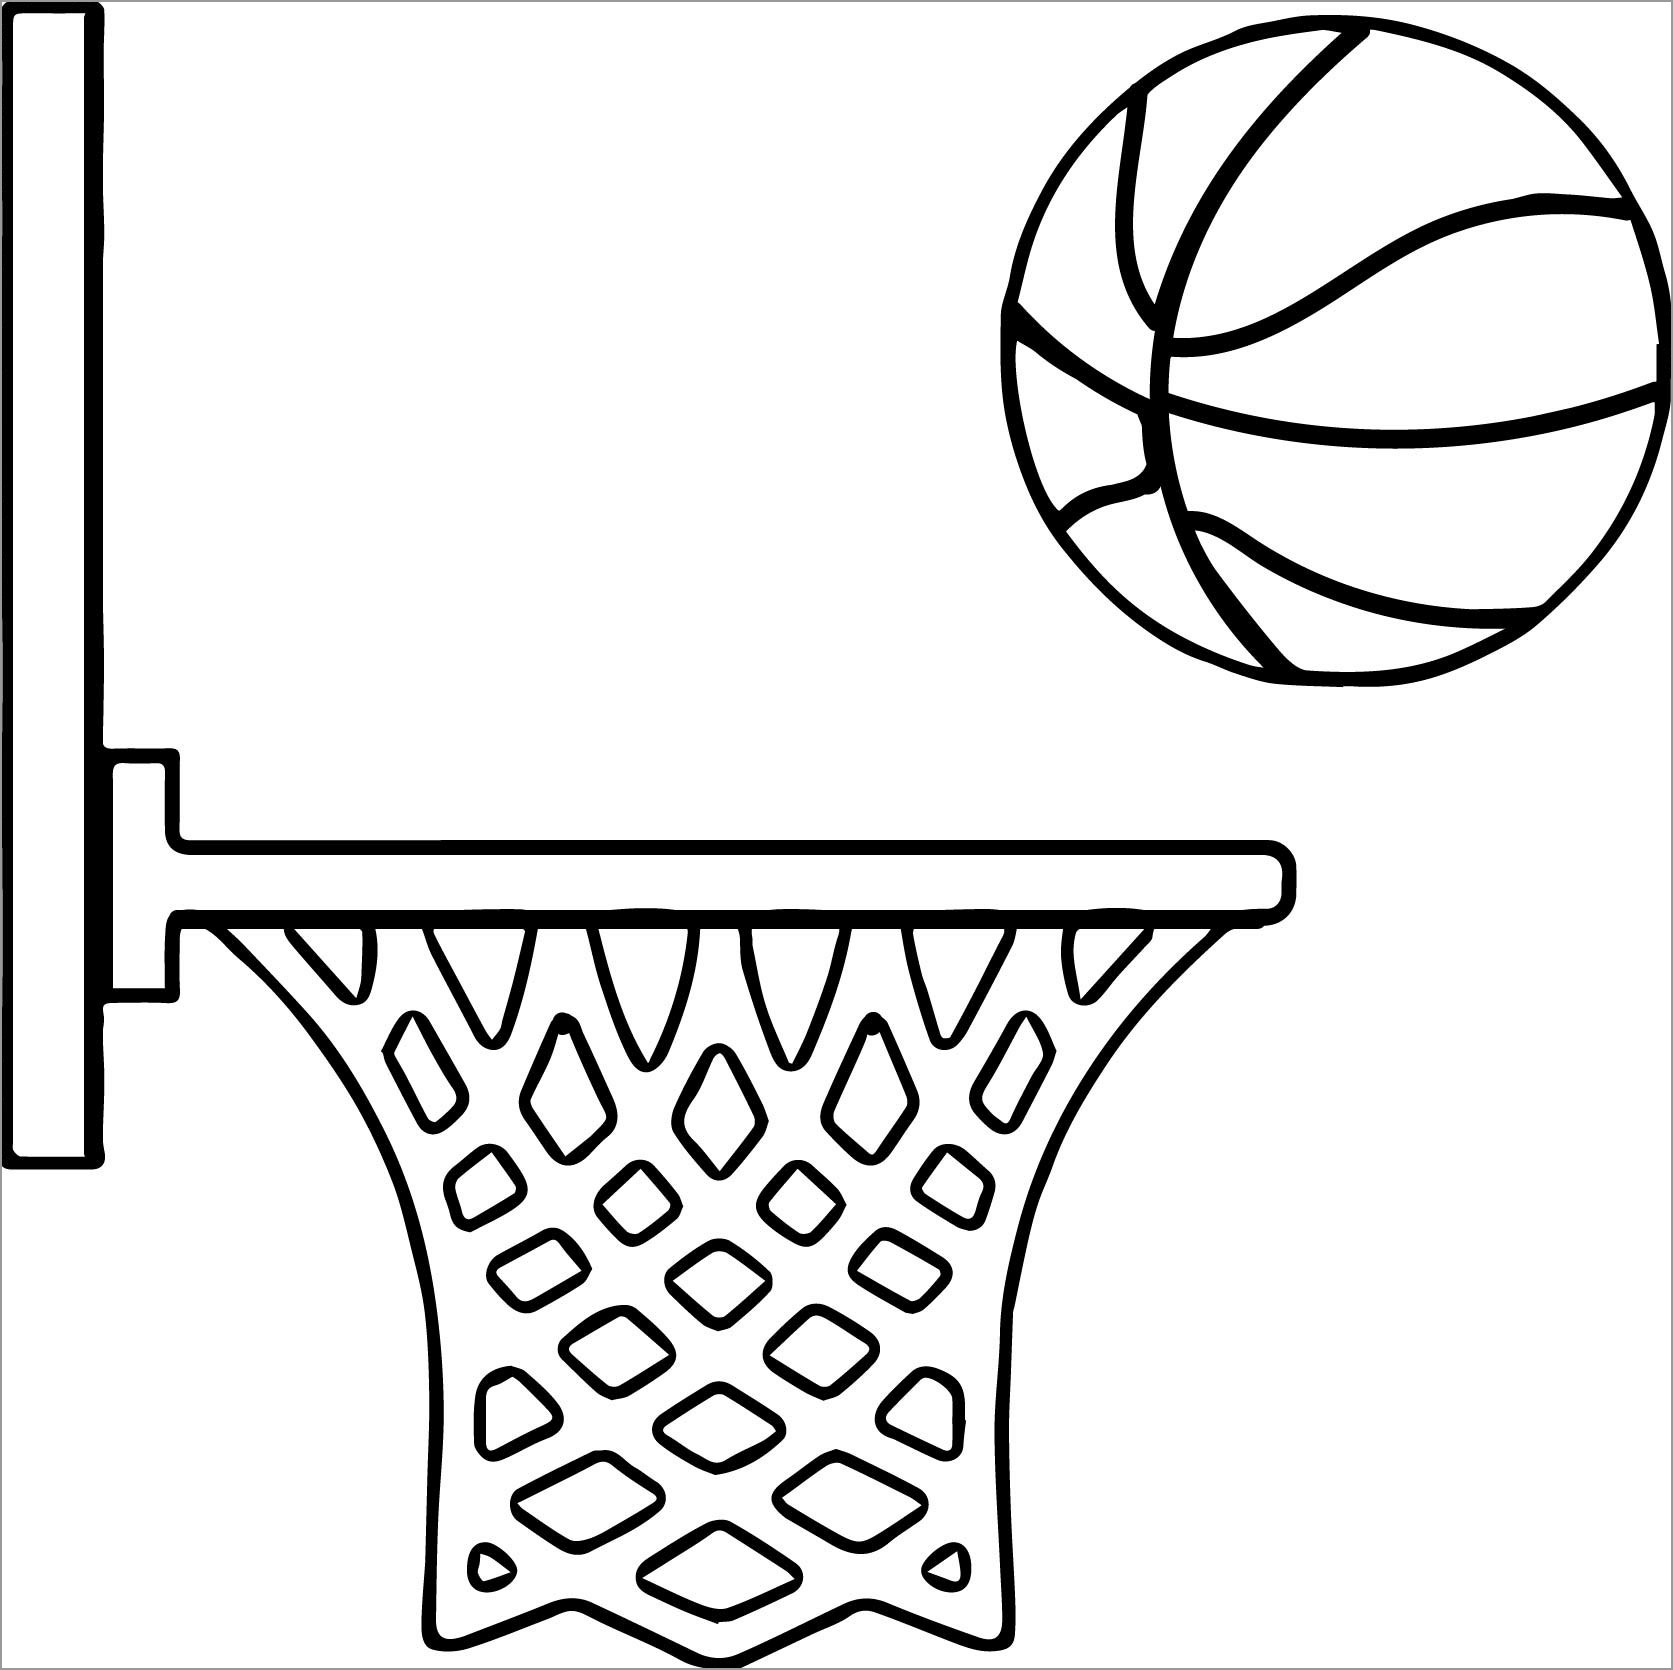 Coloring Pages Basketball for Kids